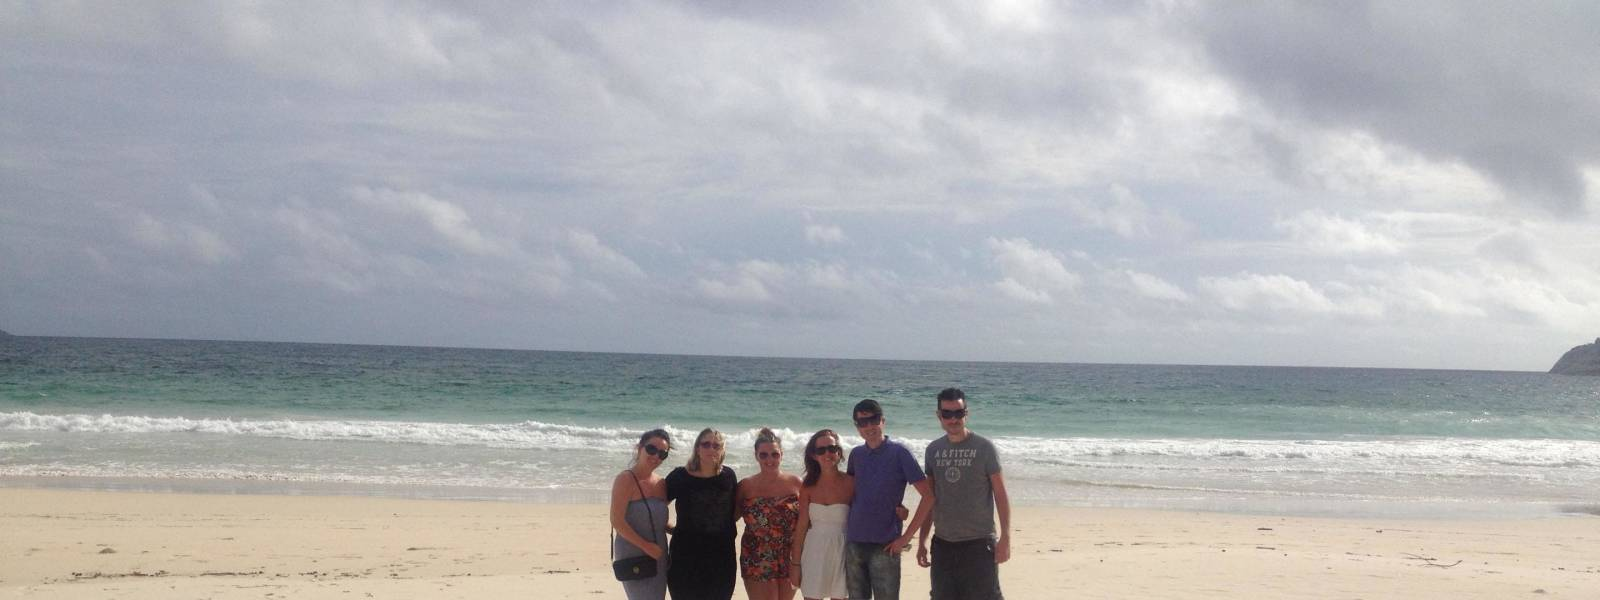 a group of people on a beach